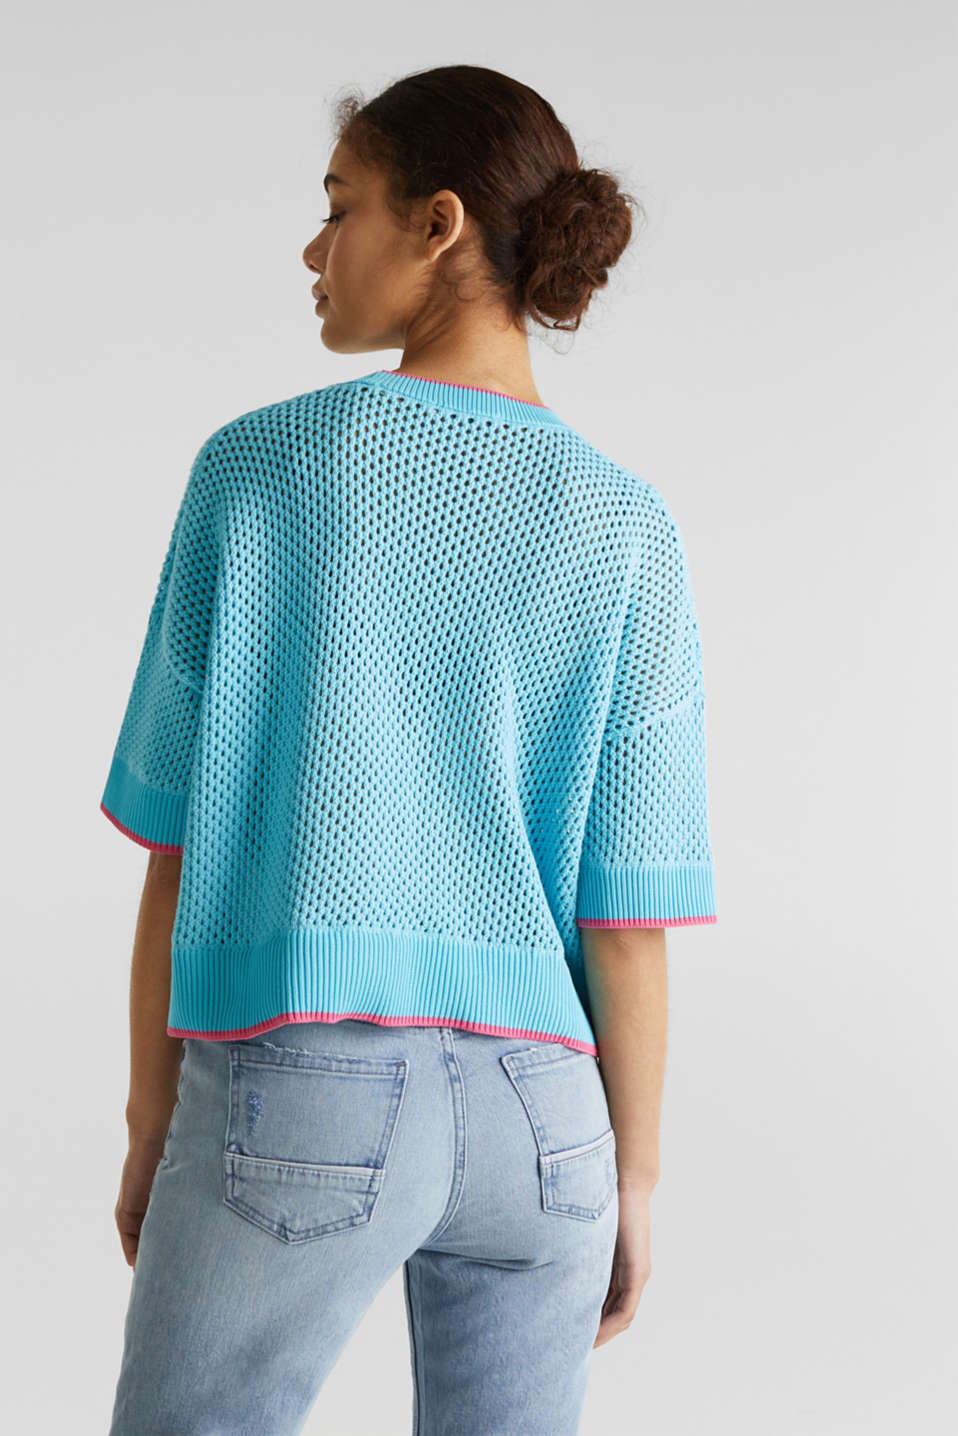 Cape jumper with an open-work pattern, TURQUOISE, detail image number 3